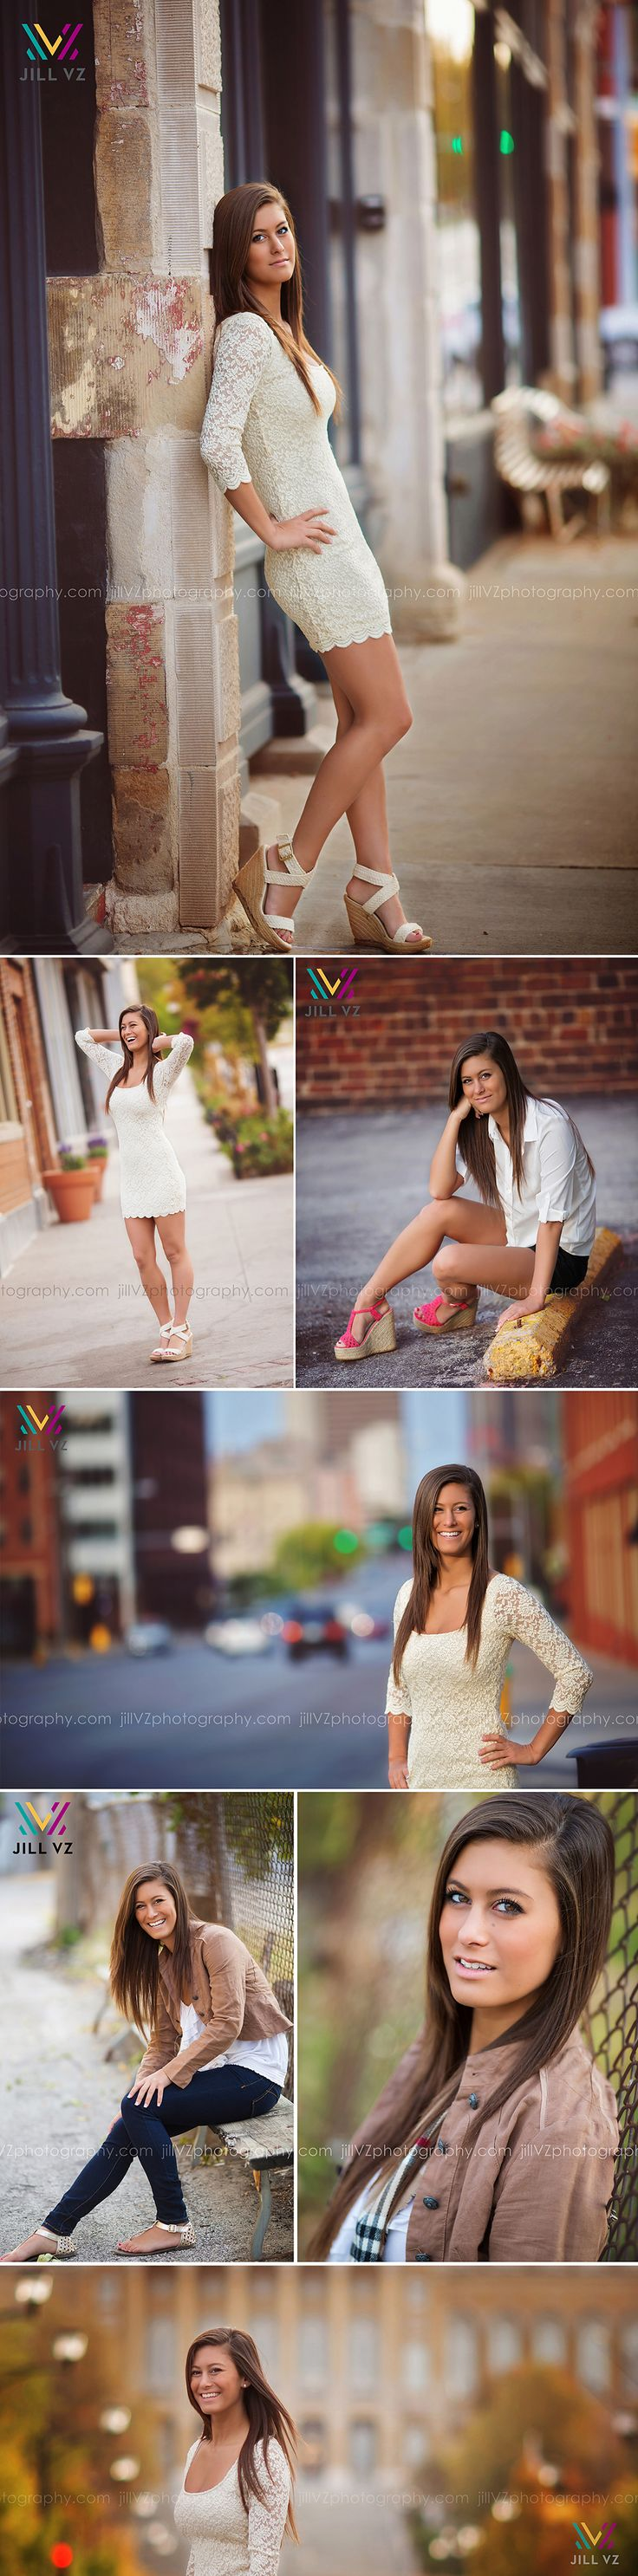 Paige | 2013 Senior | Johnston High School » Des Moines Senior Photography | High School Senior Pictures